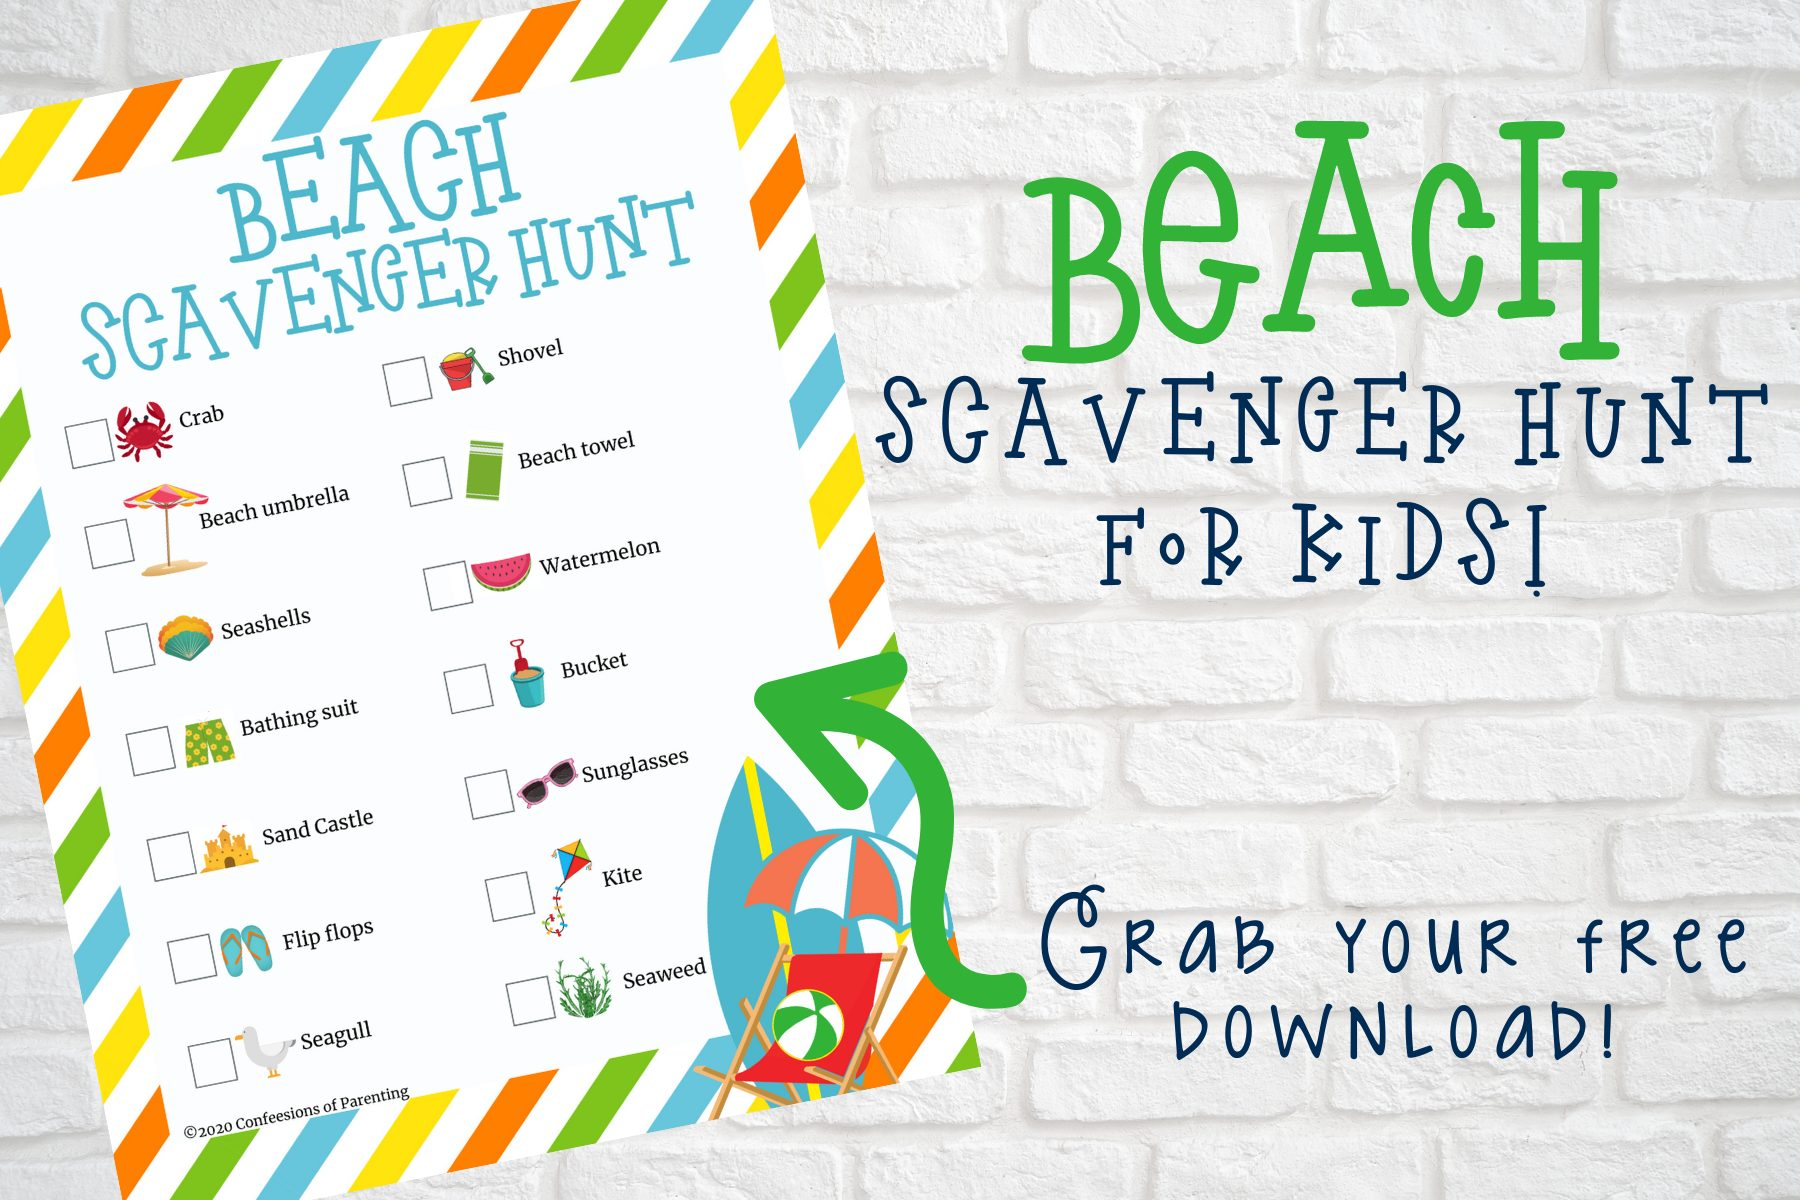 This beach scavenger hunt is the perfect activity to keep your little ones busy and entertained while you are at the beach!